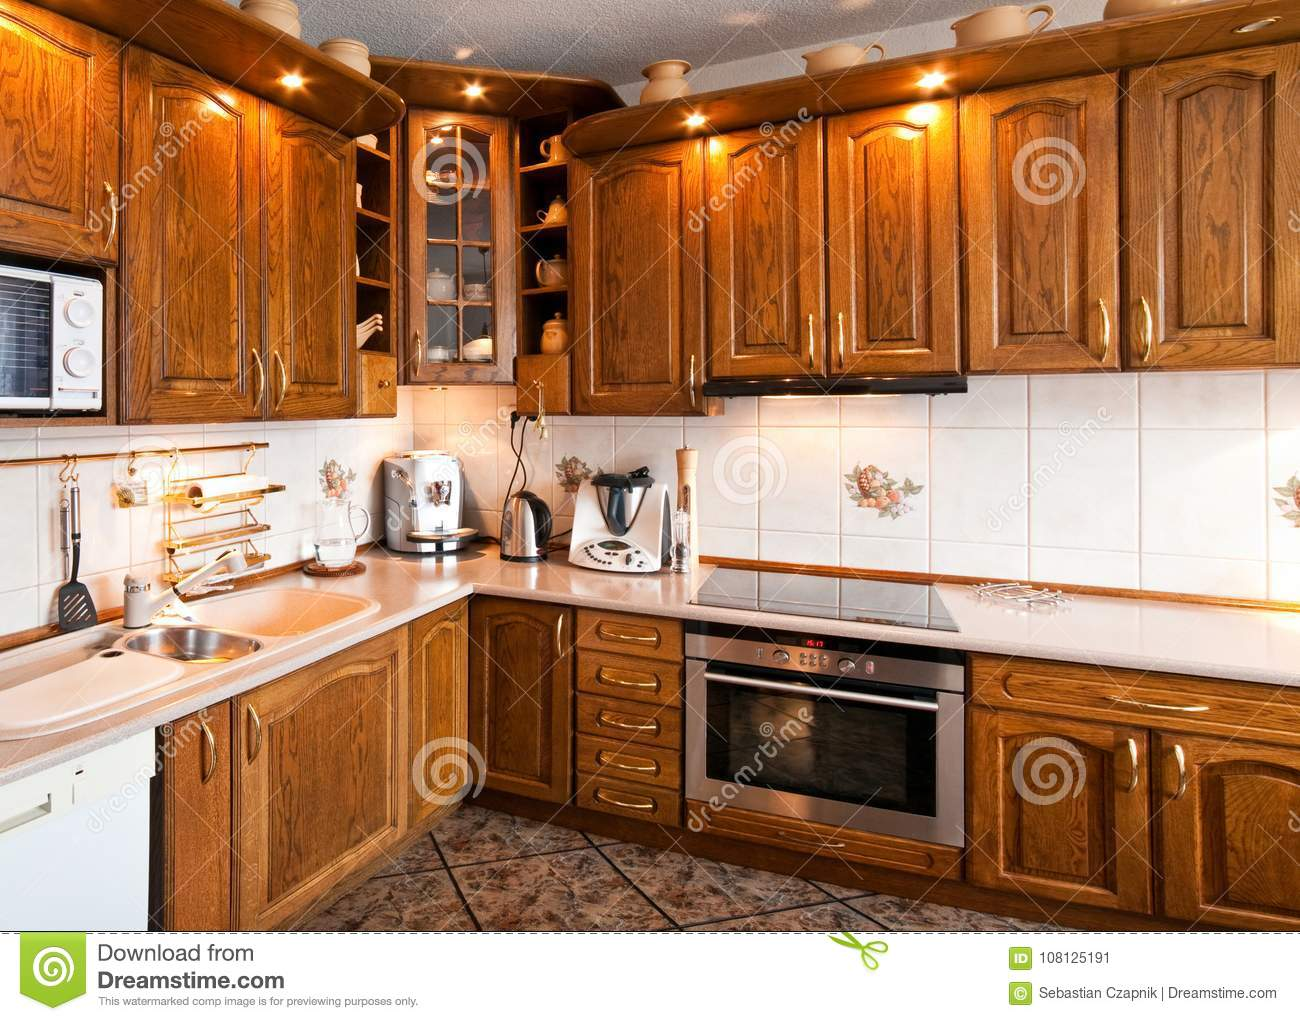 Interior Of A Classic Kitchen With Wooden Furniture Stock ...